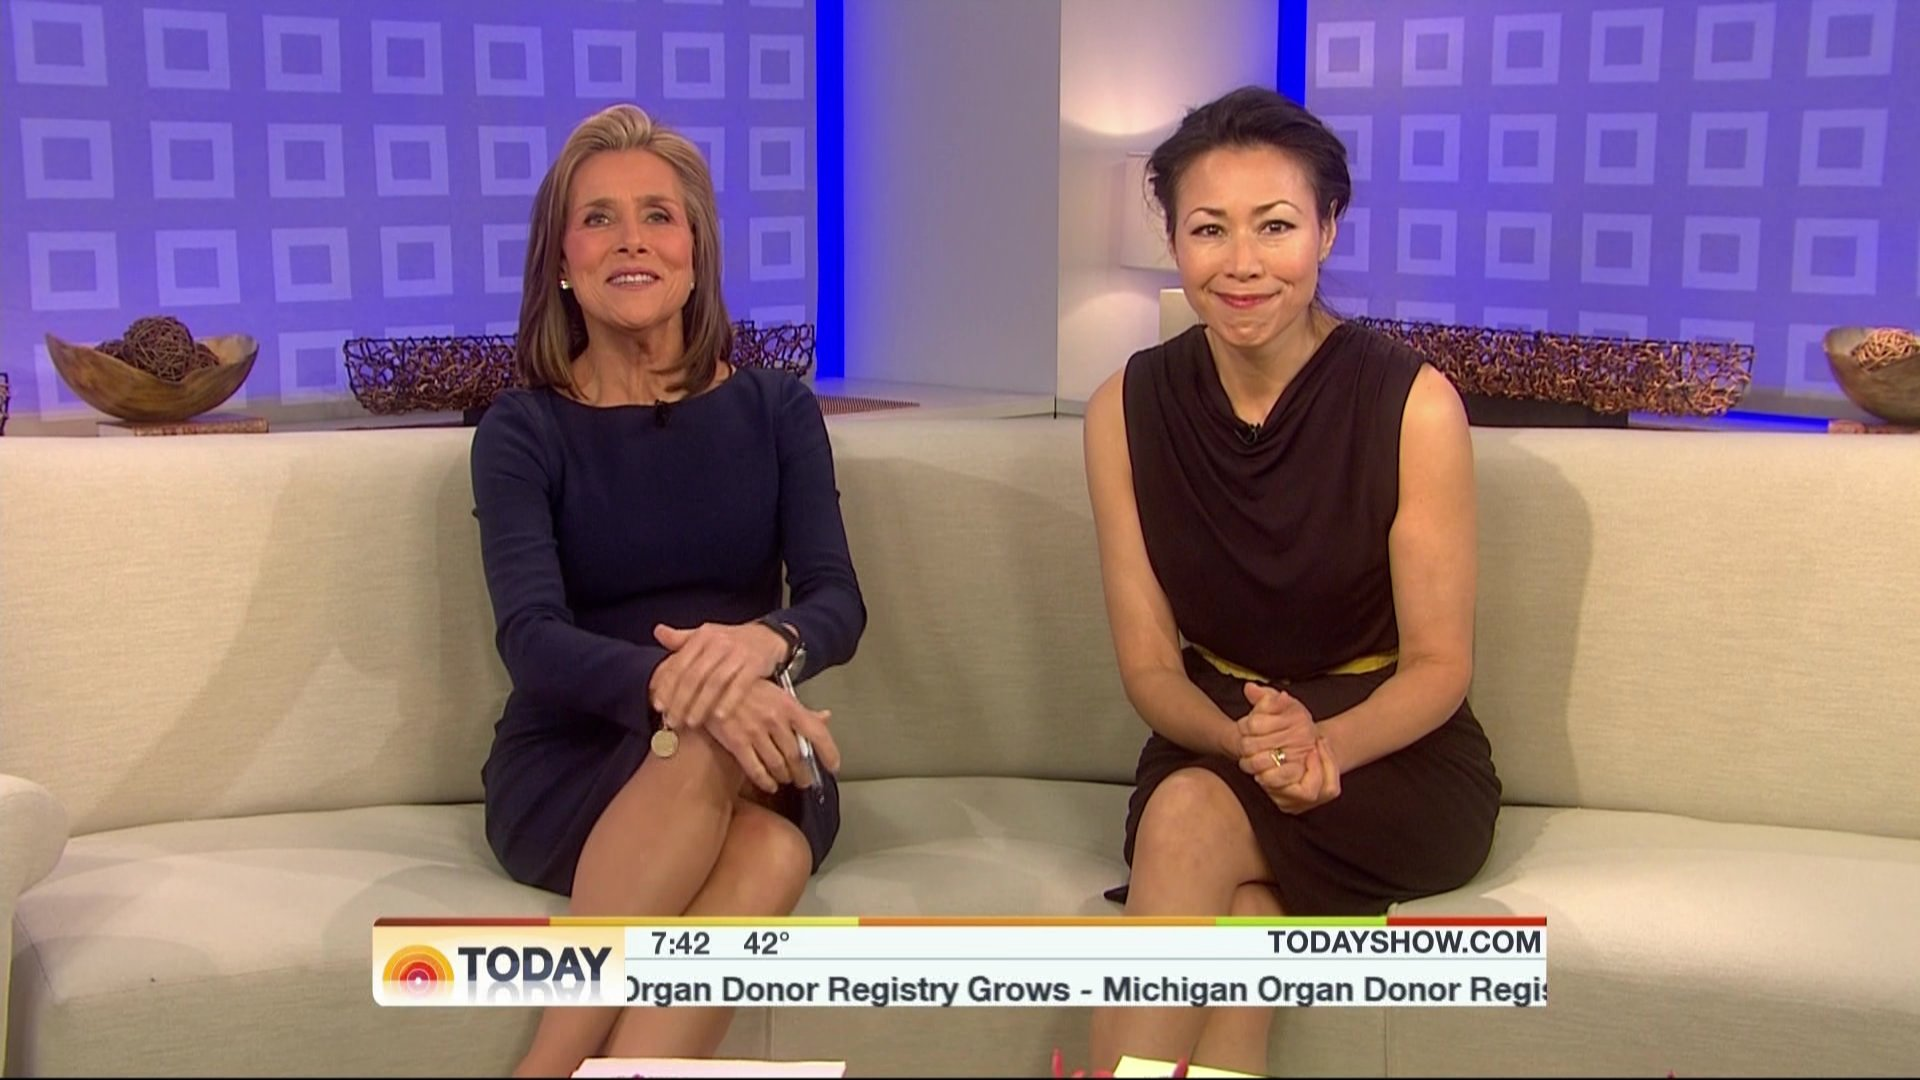 Ann Curry Legs http://meredithvieira.wordpress.com/tag/ann-curry/